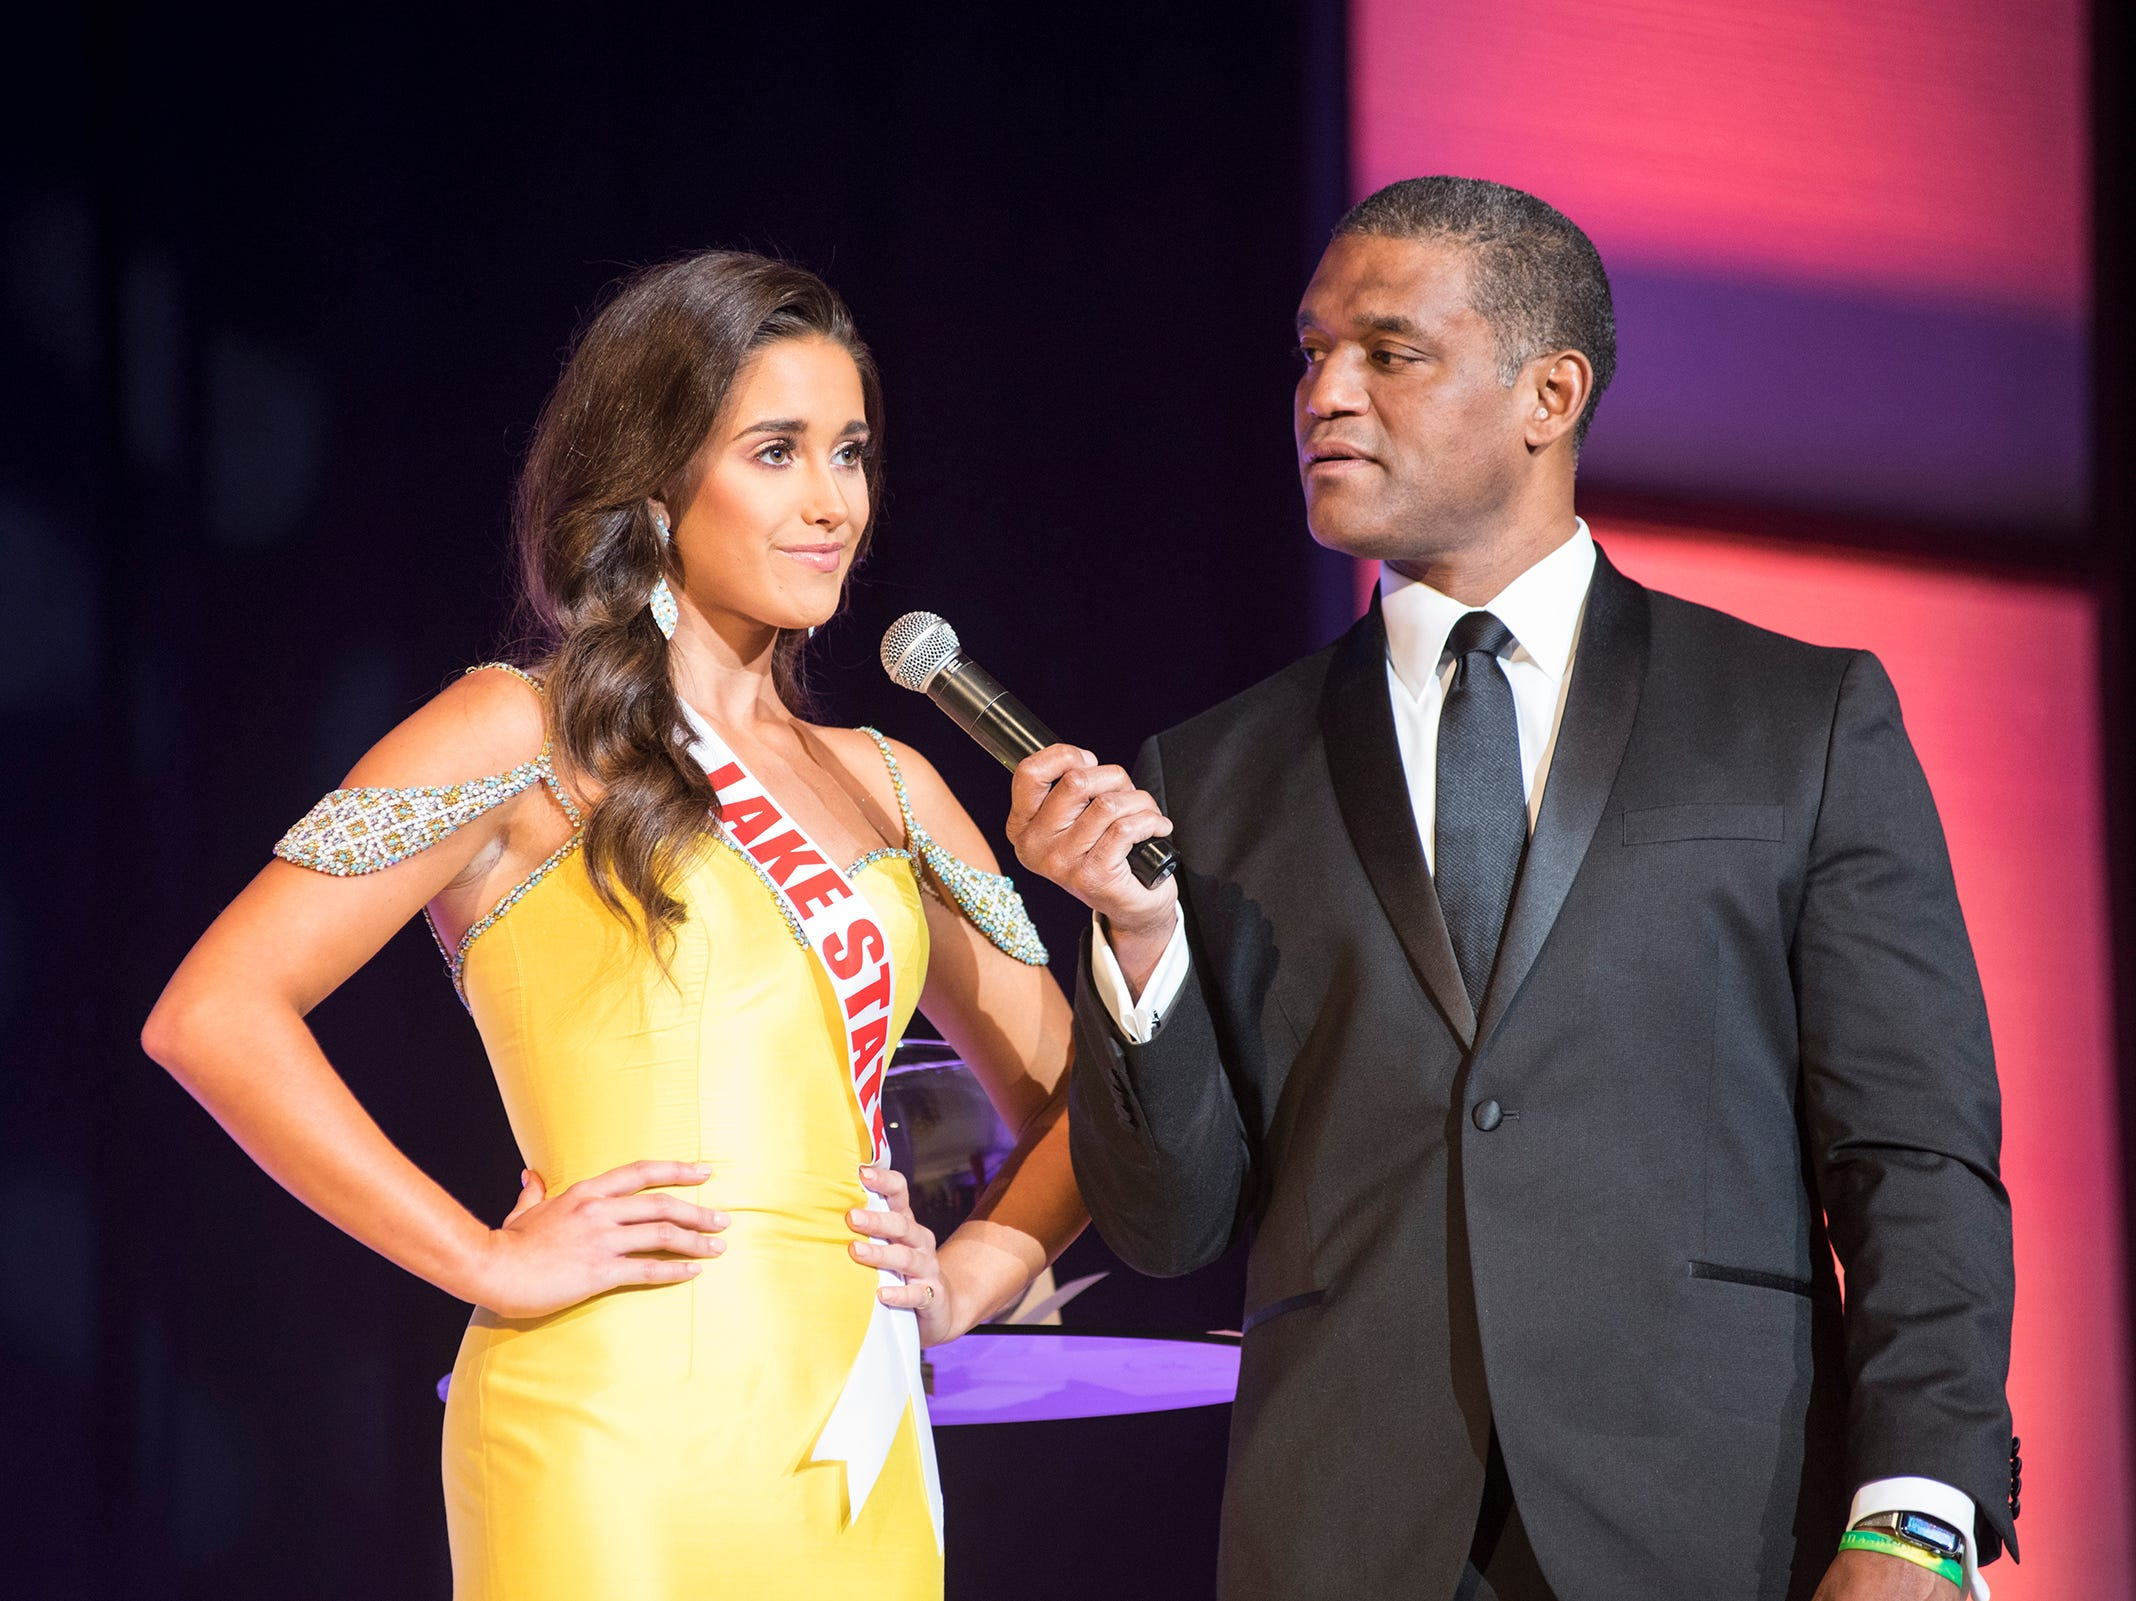 Miss Lake State Teen Keri Martin, left, is questioned by Cincinnati TV personality Rob Williams Saturday, Sept. 22, 2018 during the final round of the Miss Michigan Teen USA pageant at McMorran Theater.